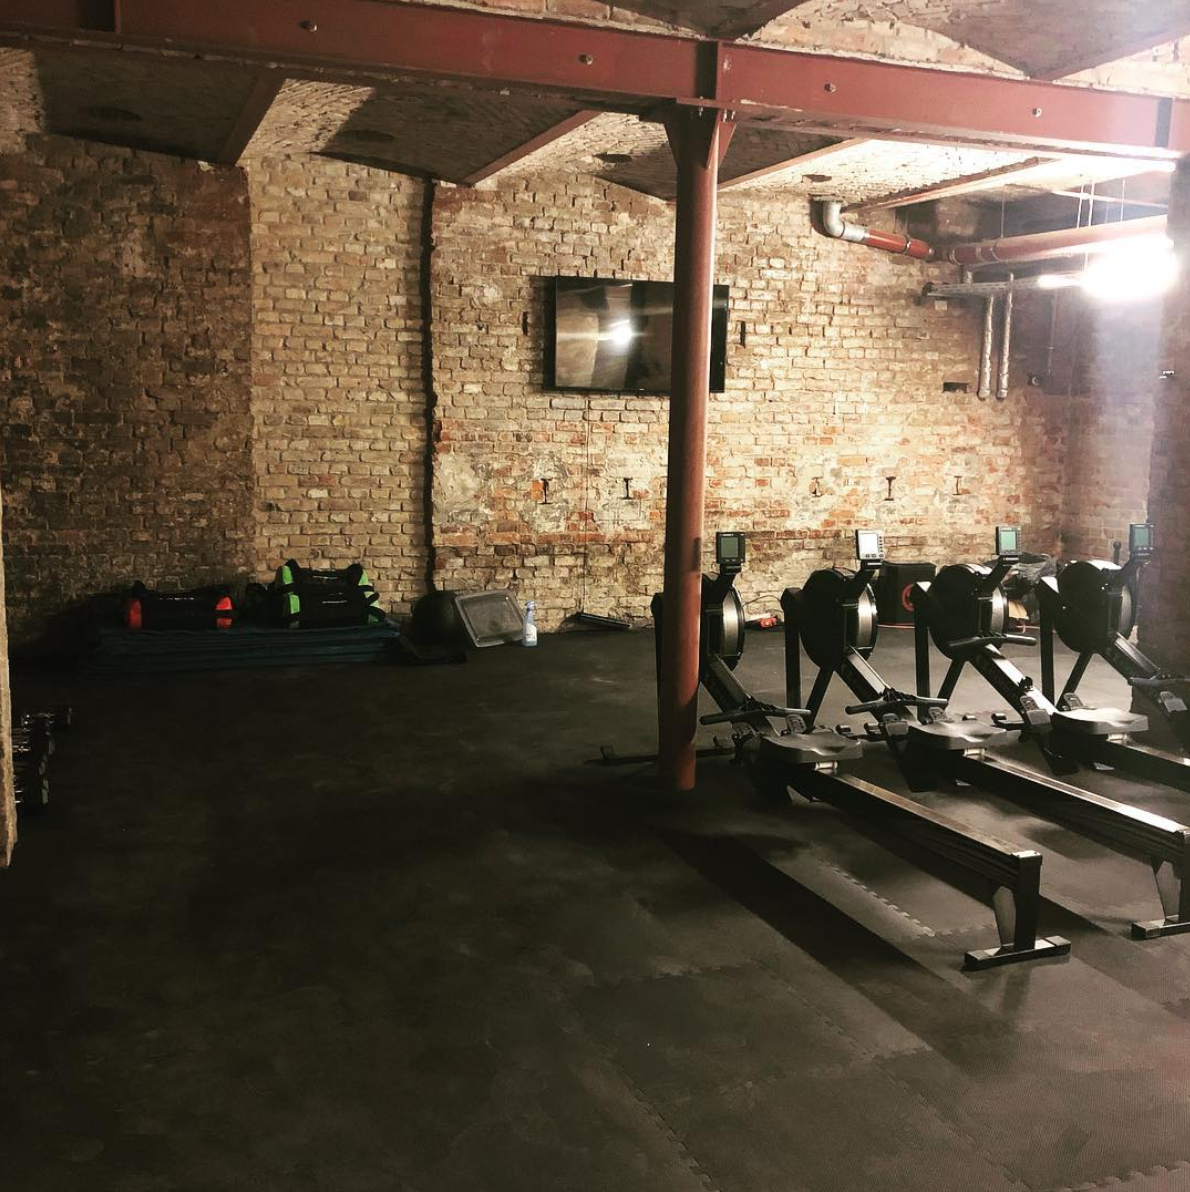 Beat 81 Mitte indoor location with a screen hanging on one of the brick walls and rowing machines and other workout gear standing in the room